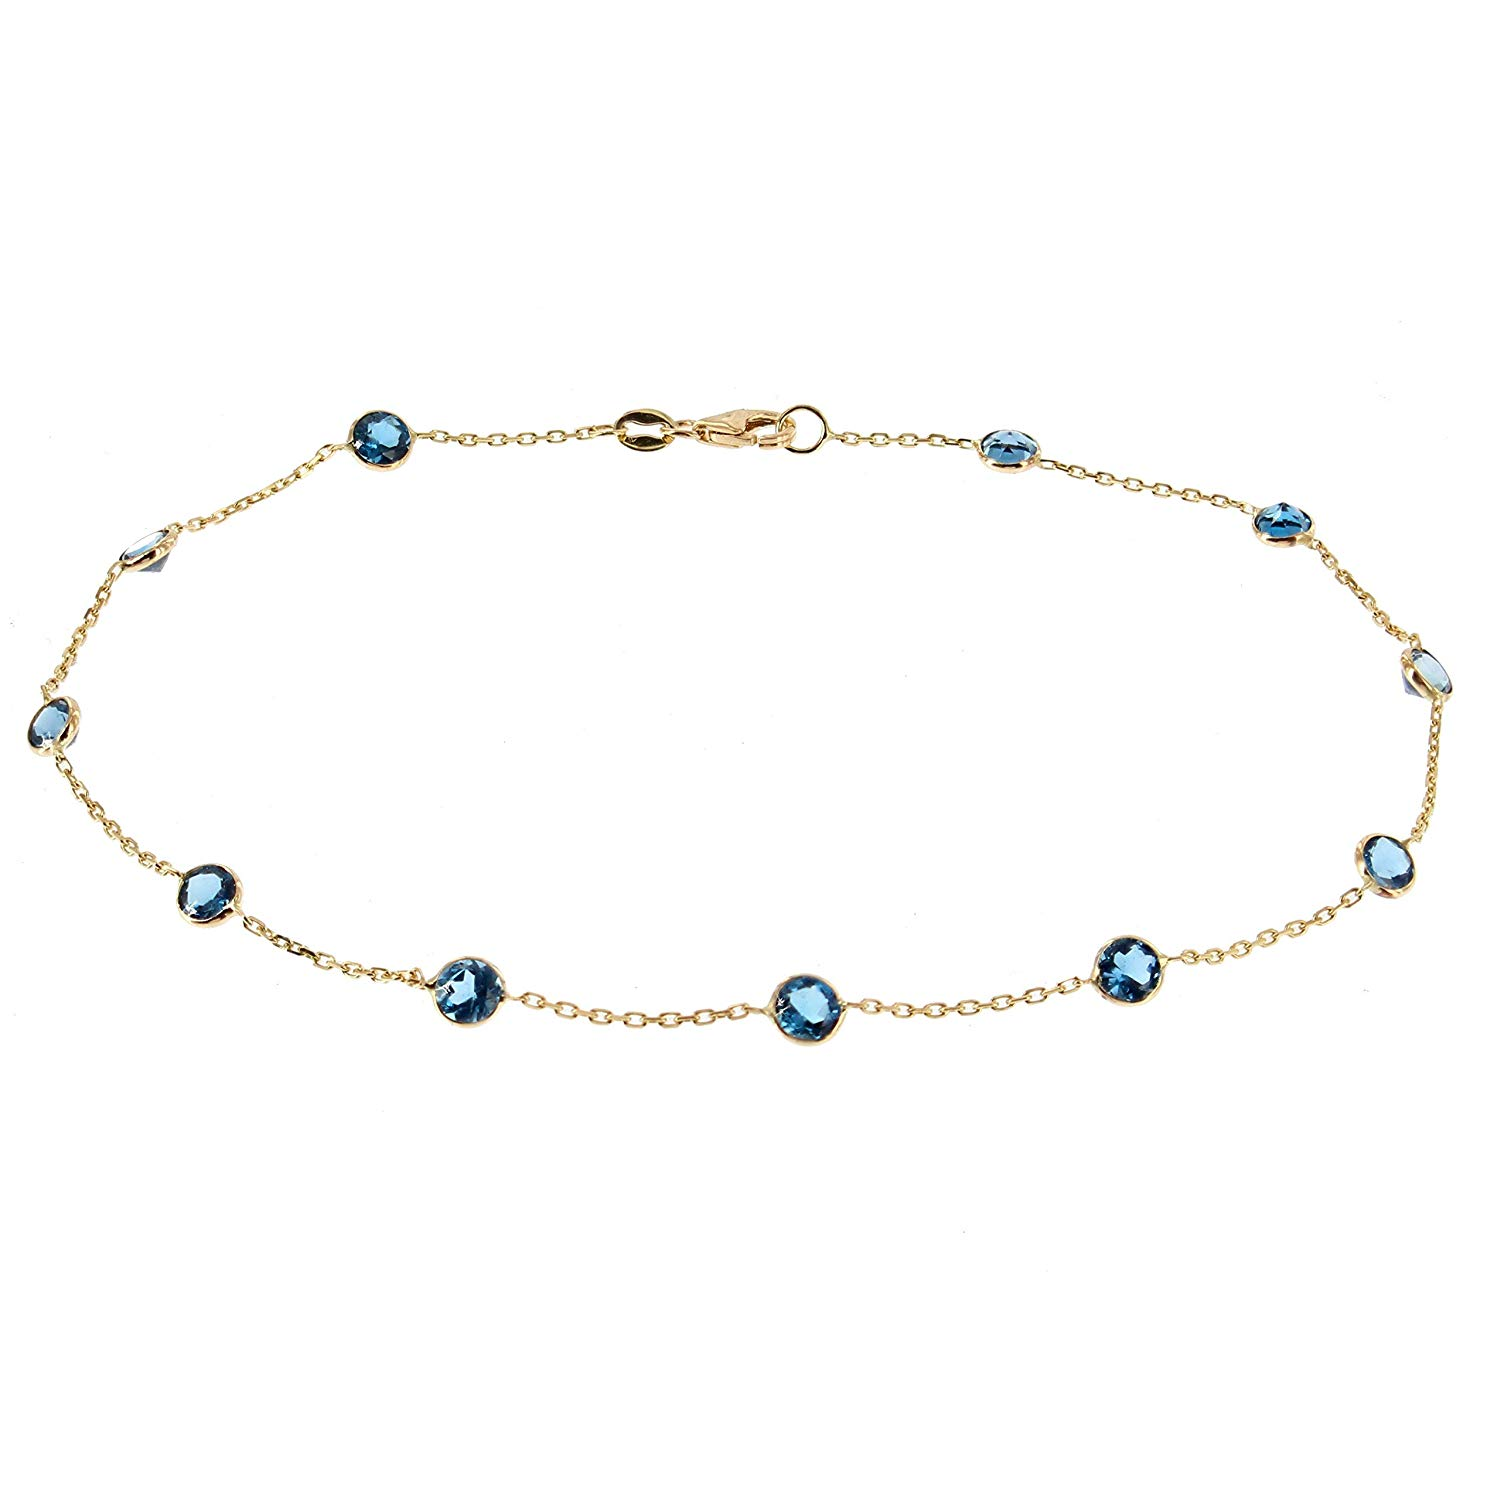 Amethyst And Blue Topaz Drop 9 Inches 14K Yellow Gold Anklet With Lemon Topaz